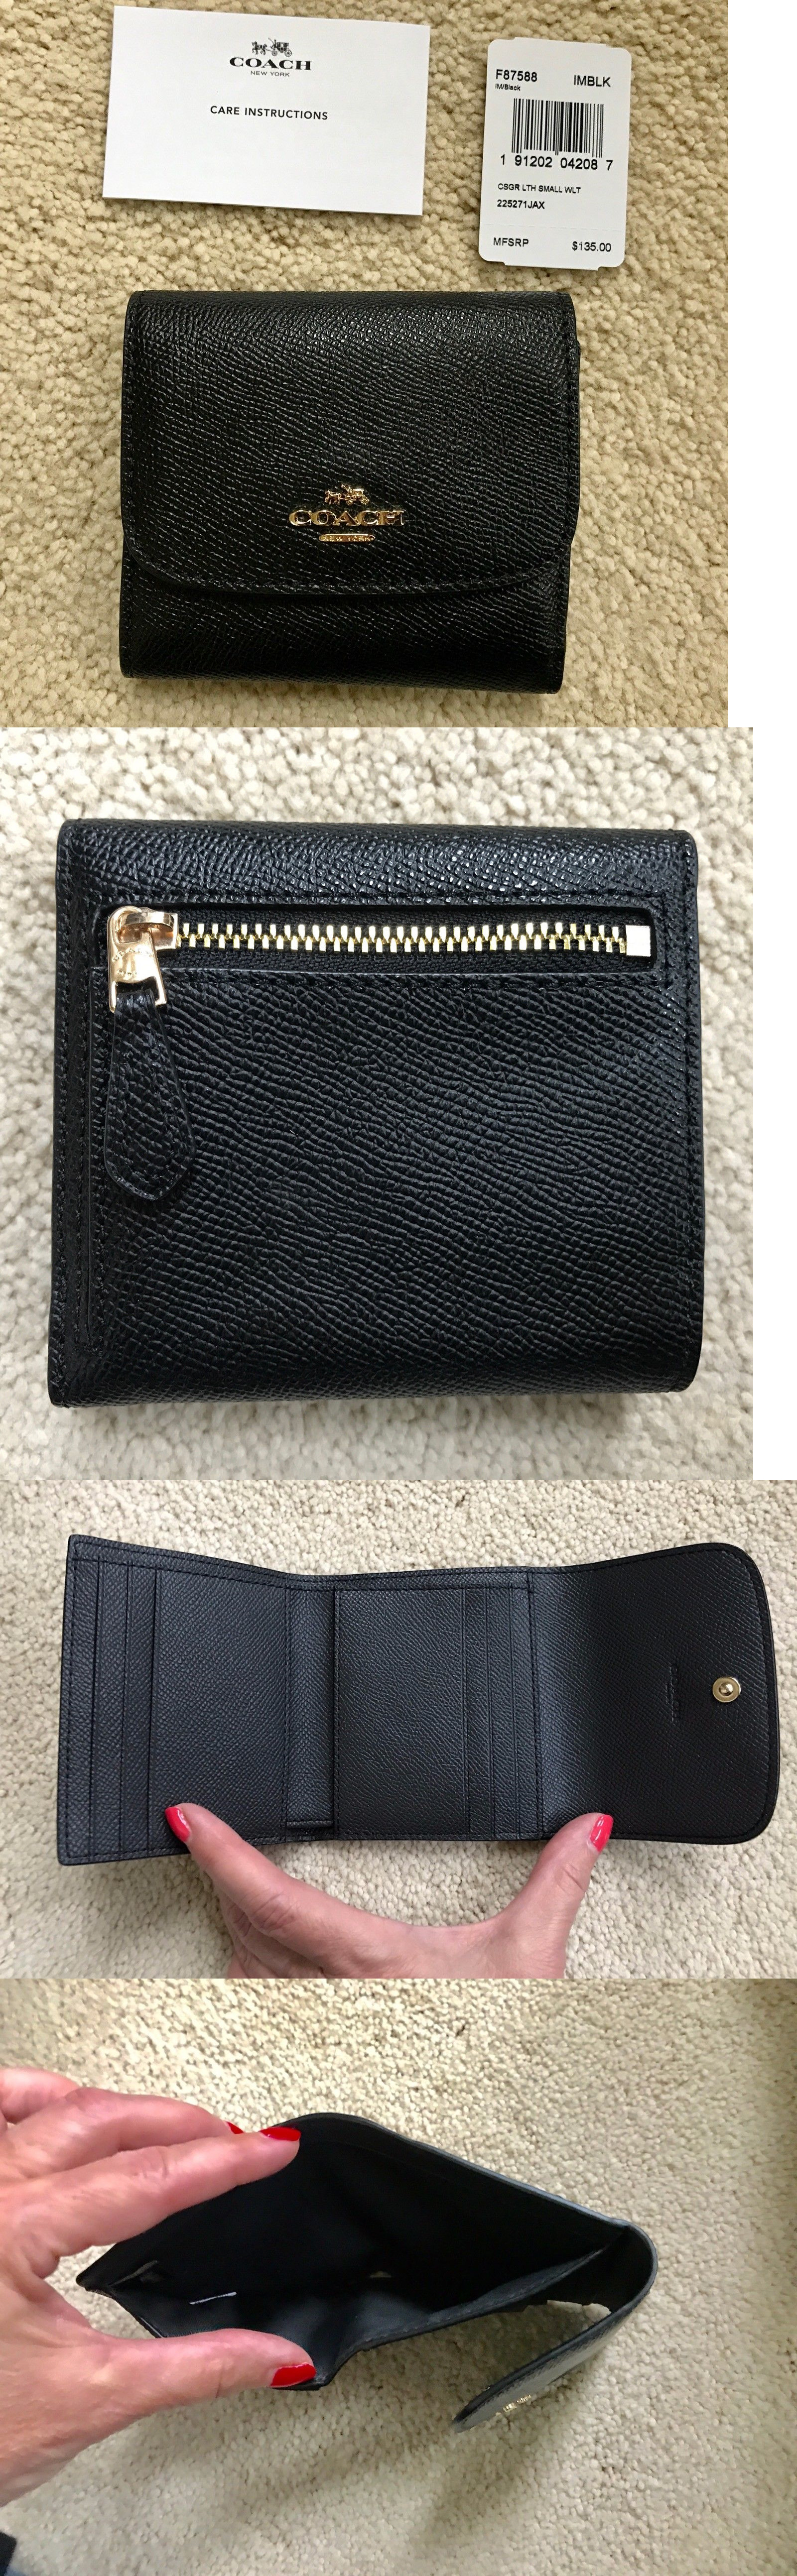 366a3803cf11 ... where to buy 1234 0929f b2456 new zealand wallets 45258 nwt coach small  trifold wallet crossgrain